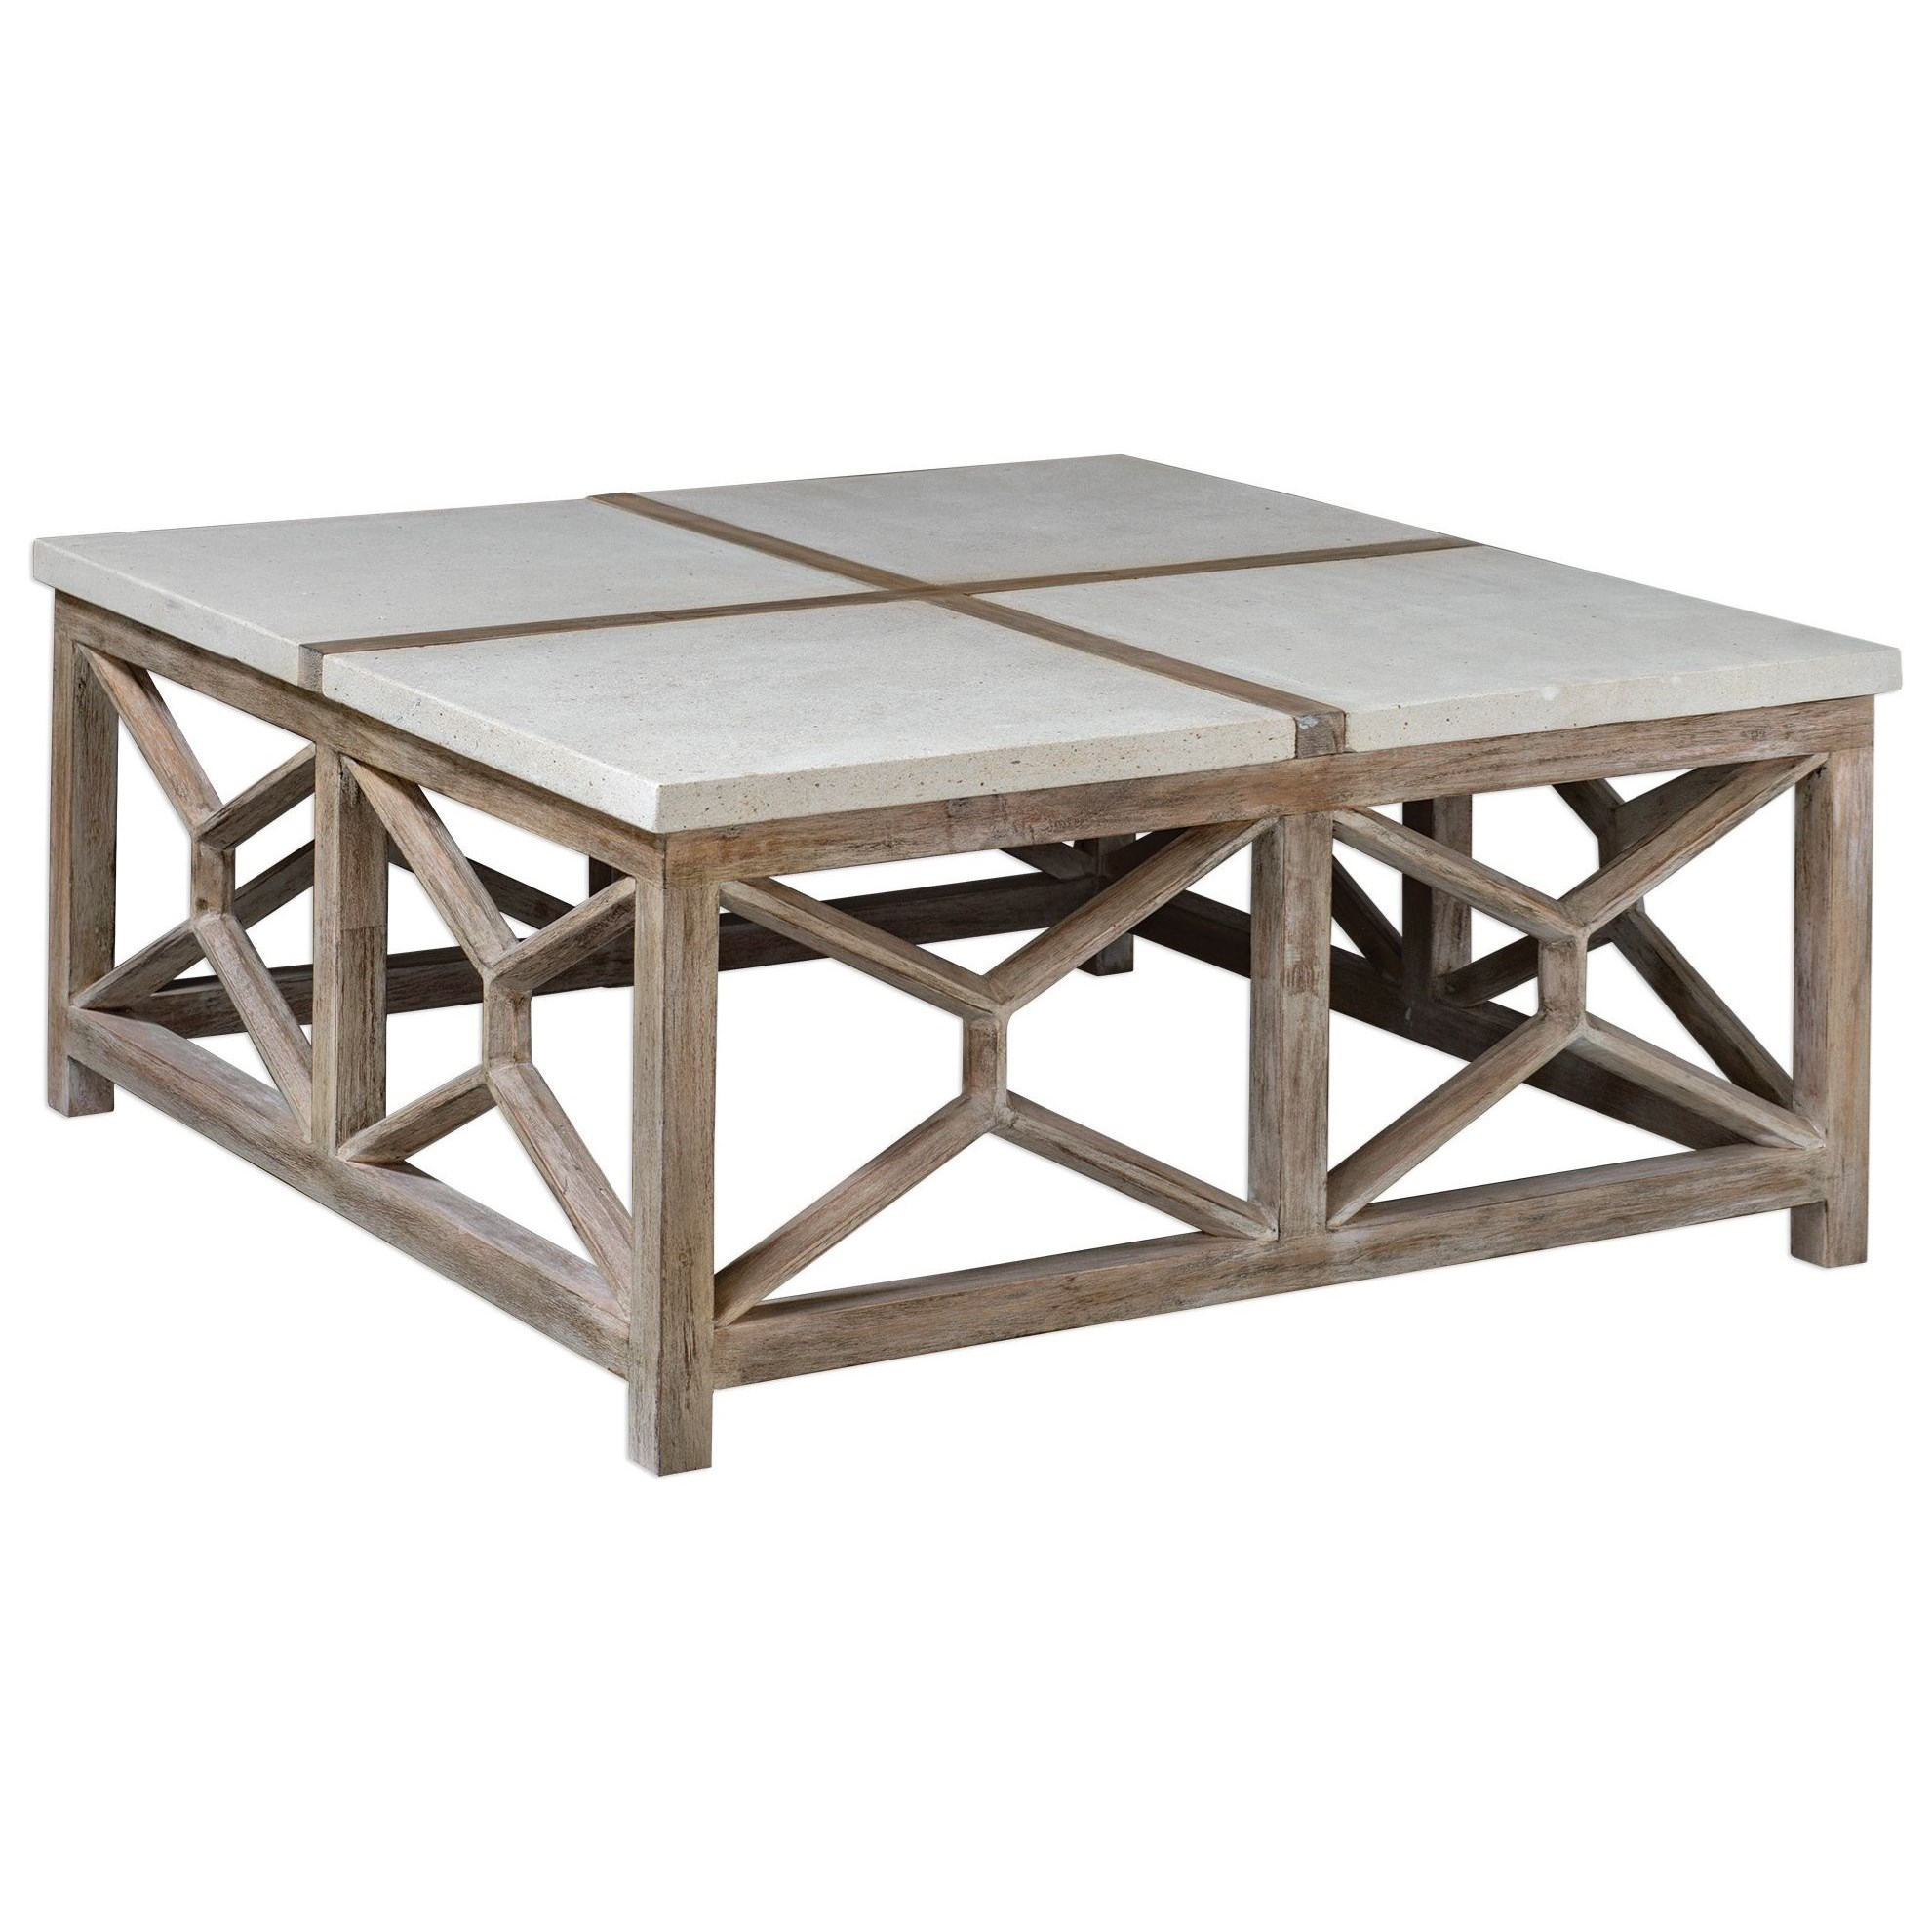 Accent Furniture - Occasional Tables Catali Stone Coffee Table by Uttermost at Upper Room Home Furnishings